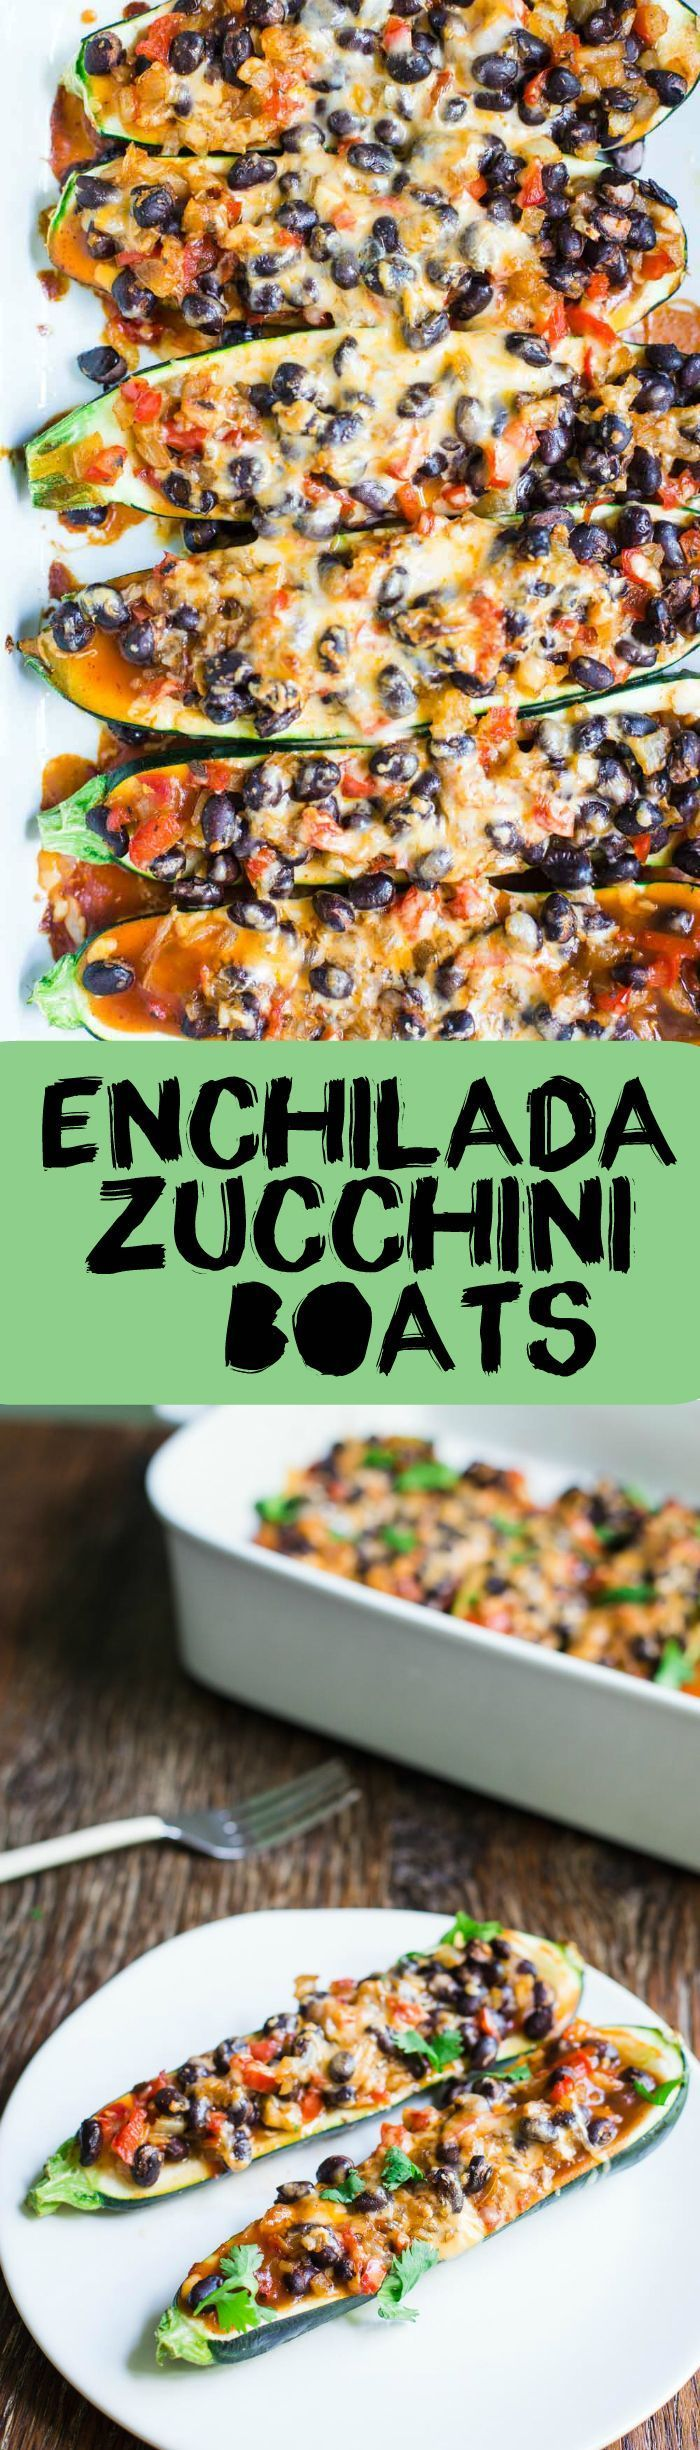 Enchilada Zucchini Boats- this recipe is VEGAN, vegetarian, gluten free, and super easy to make. Perfect for the summer when zucchini is everywhere!